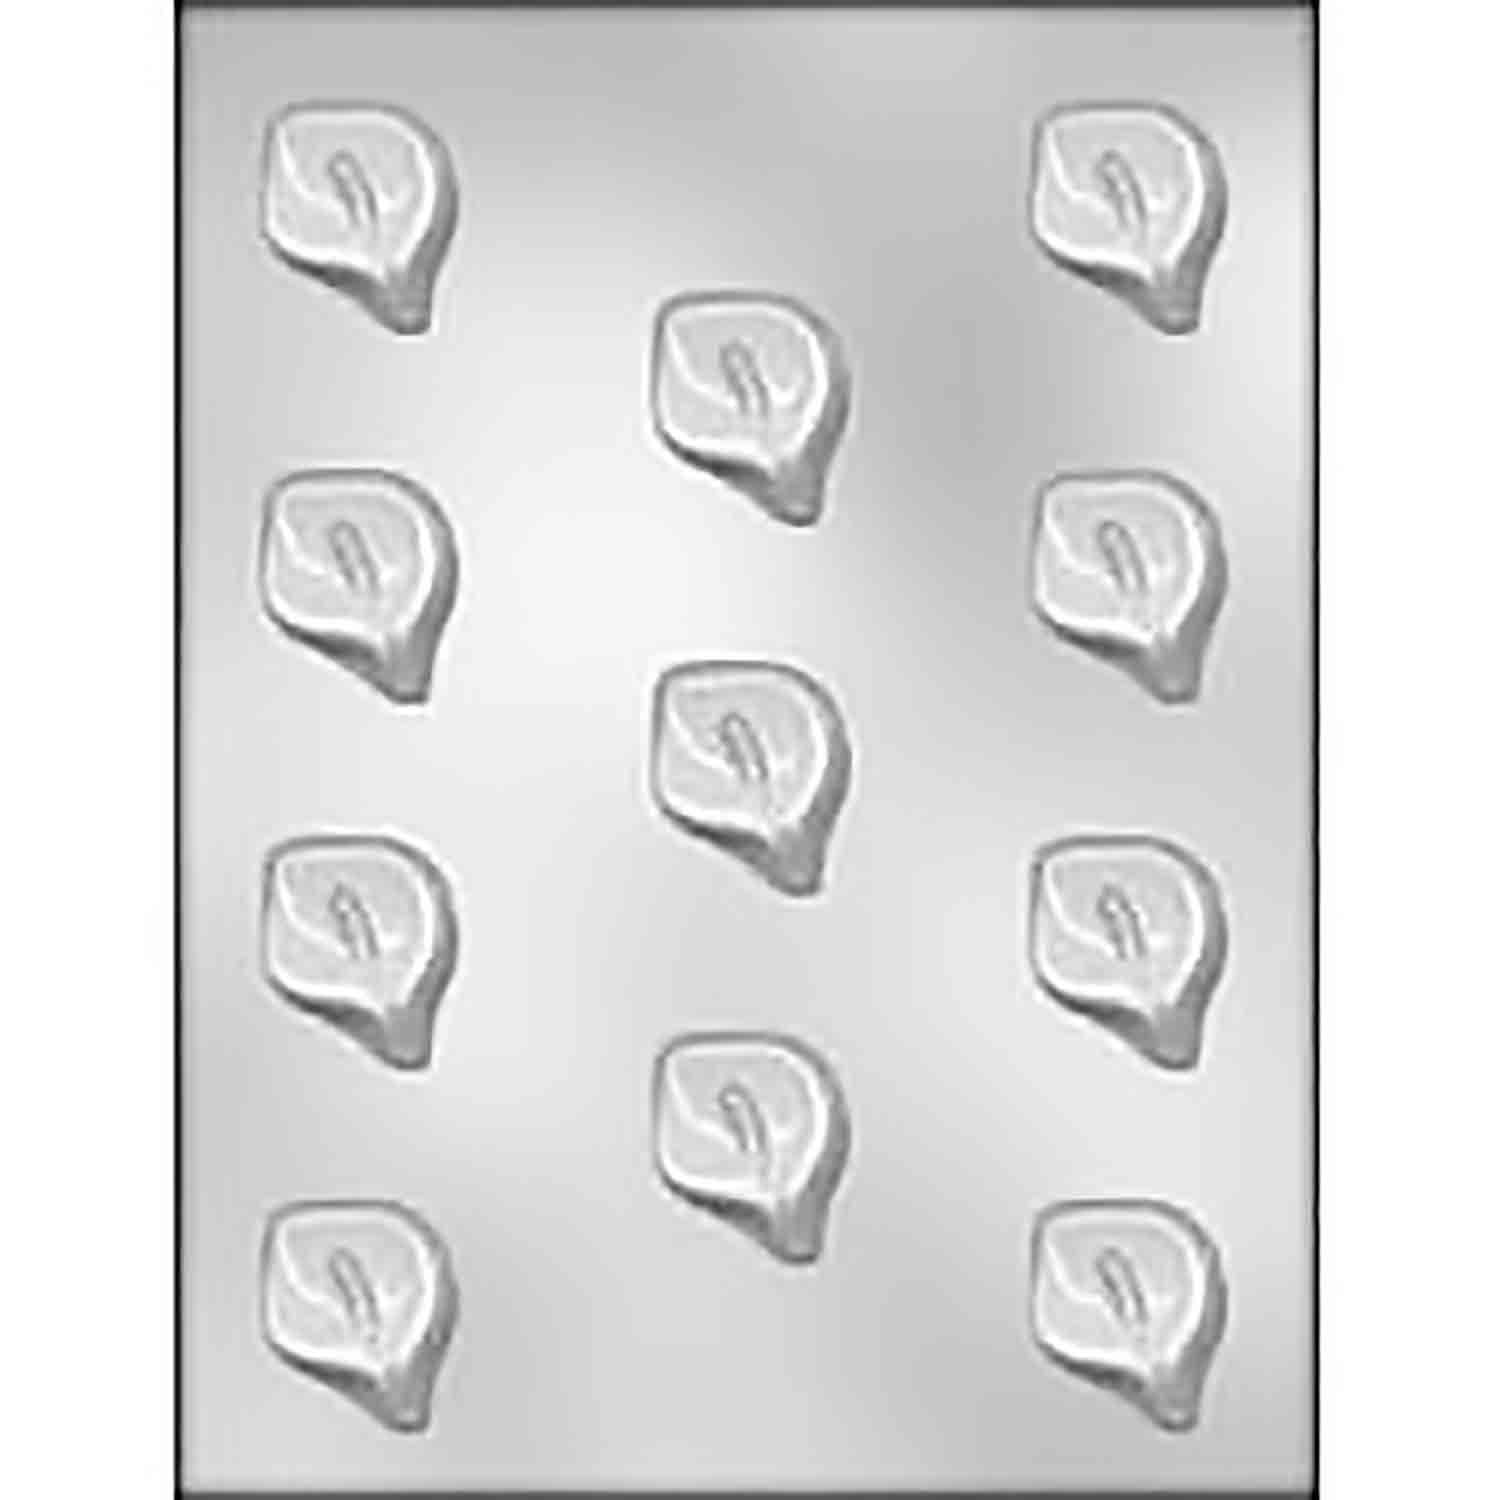 Calla Lily Chocolate Candy Mold